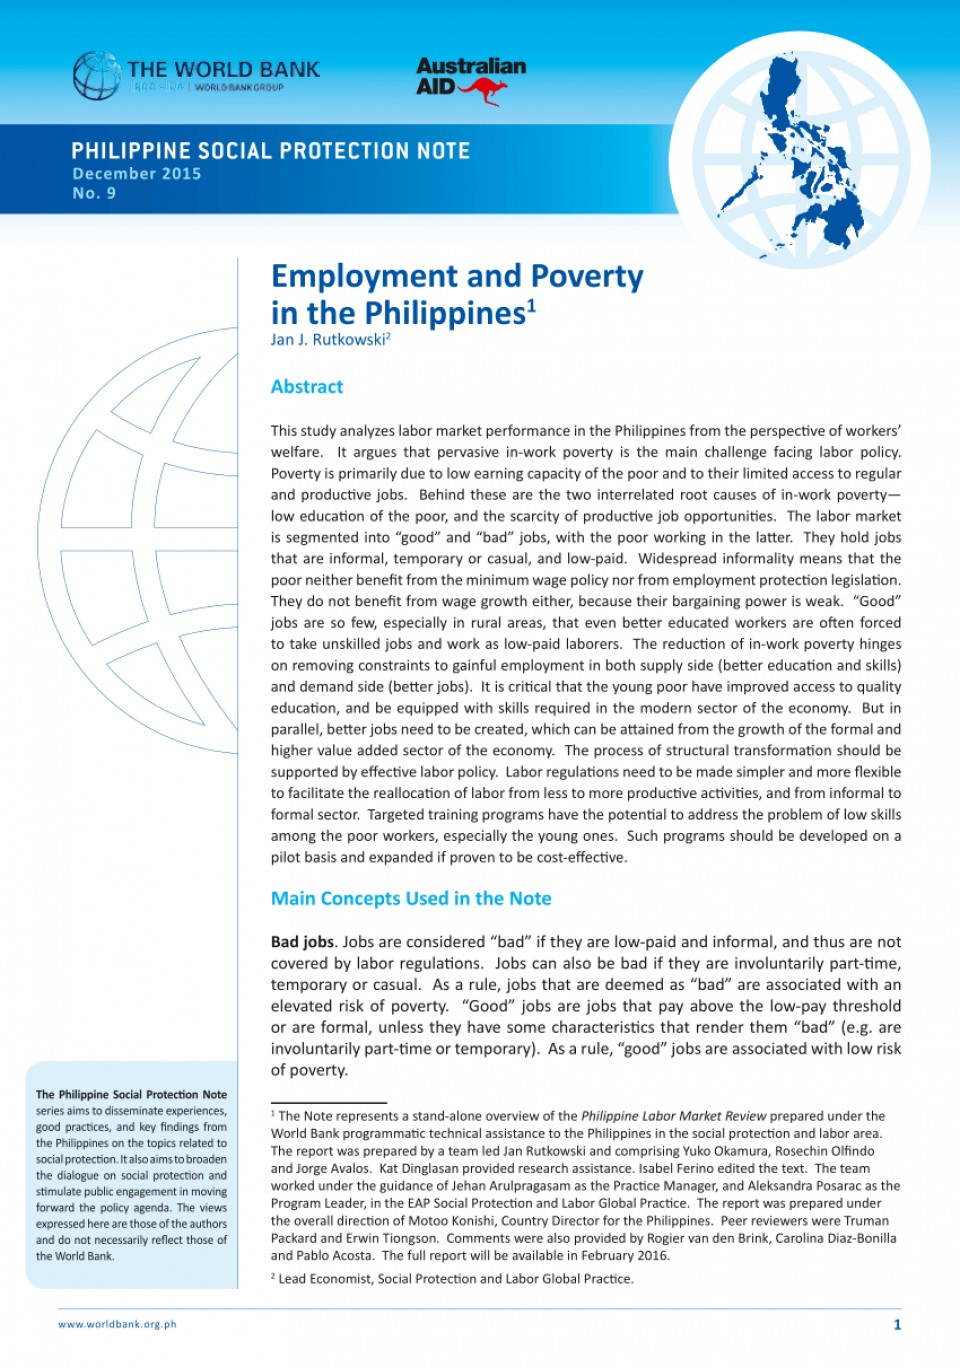 007 Poverty In The Philippines Research Paper Abstract Remarkable 960